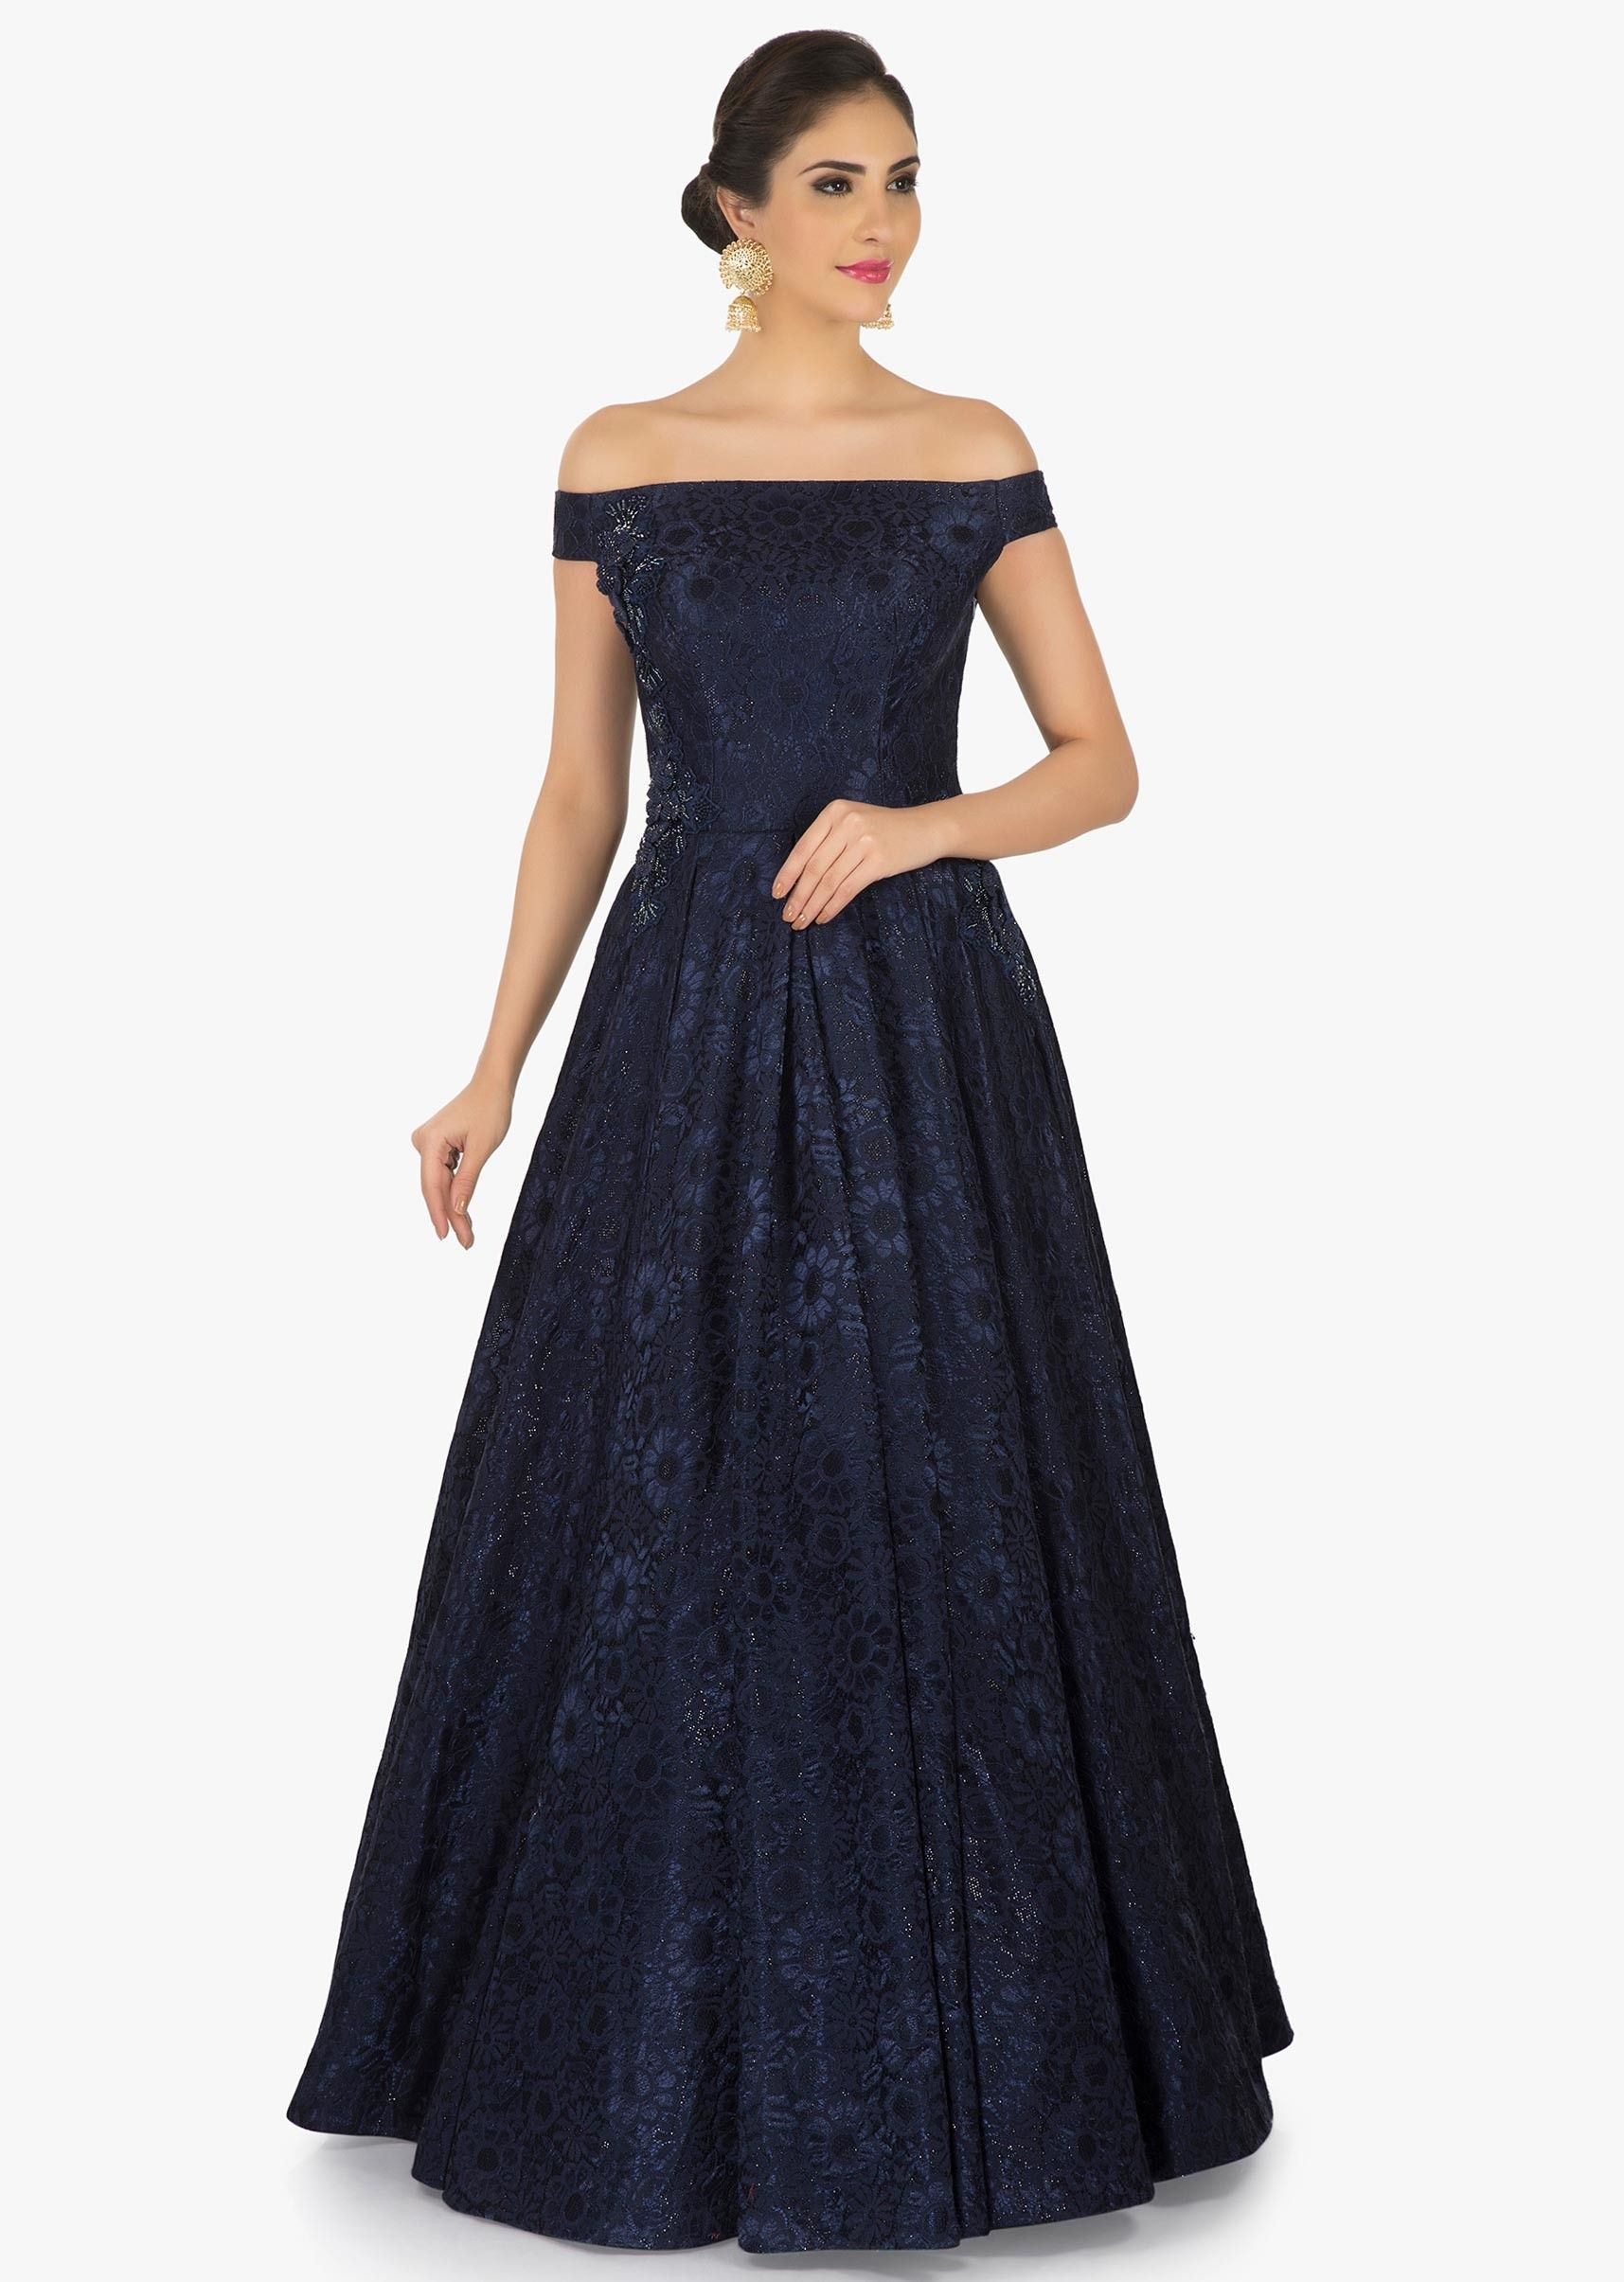 0635c0affc2d The navy blue gown is featured in chantilly lace fabric. Showing its all  prime importance the gown is displays the unusual embroidery work in moti.